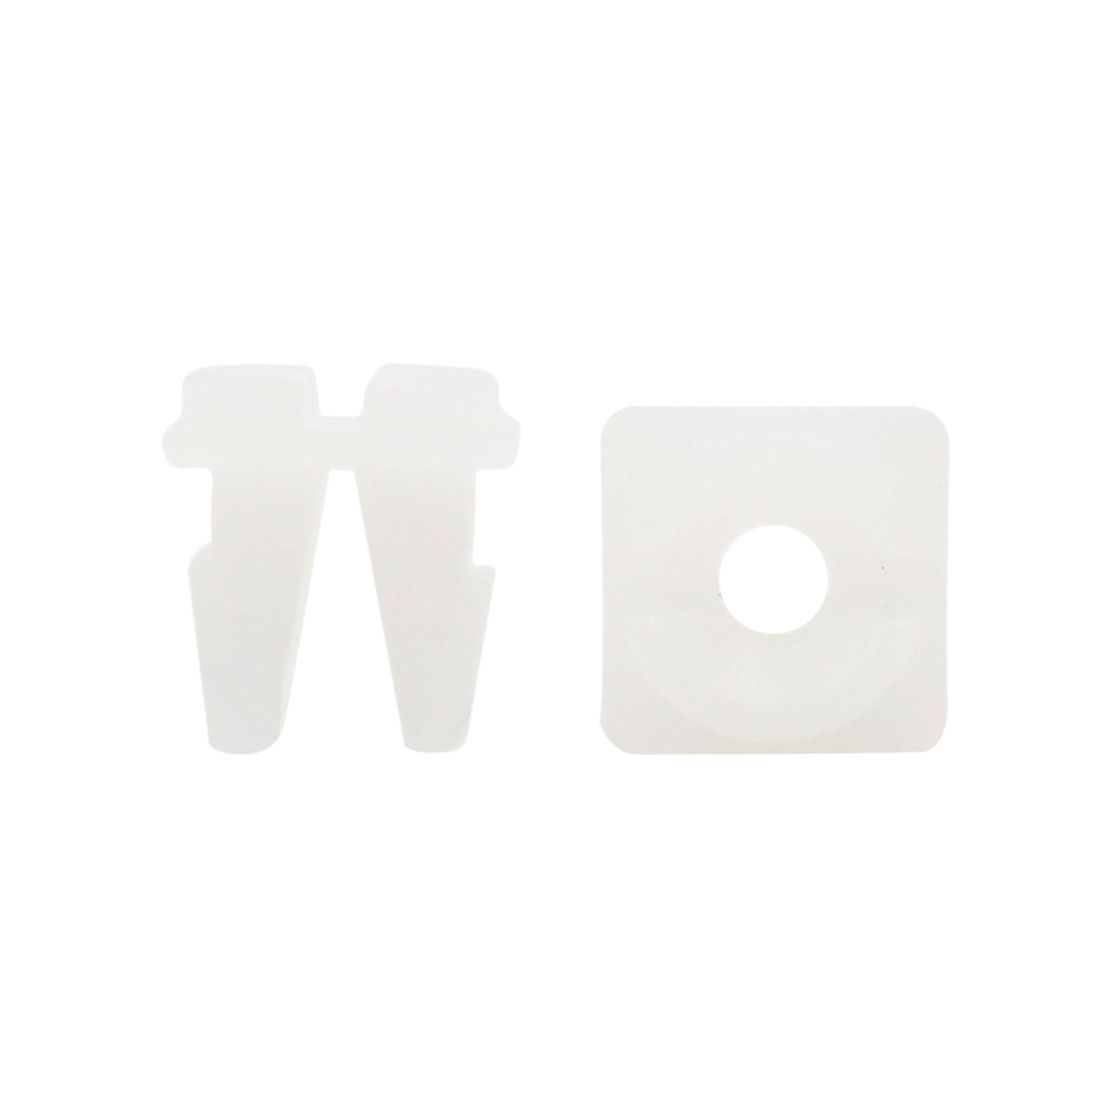 30pcs 11 x 10mm Hole Plastic Rivets Fastener Push Type Clips White for Auto Car